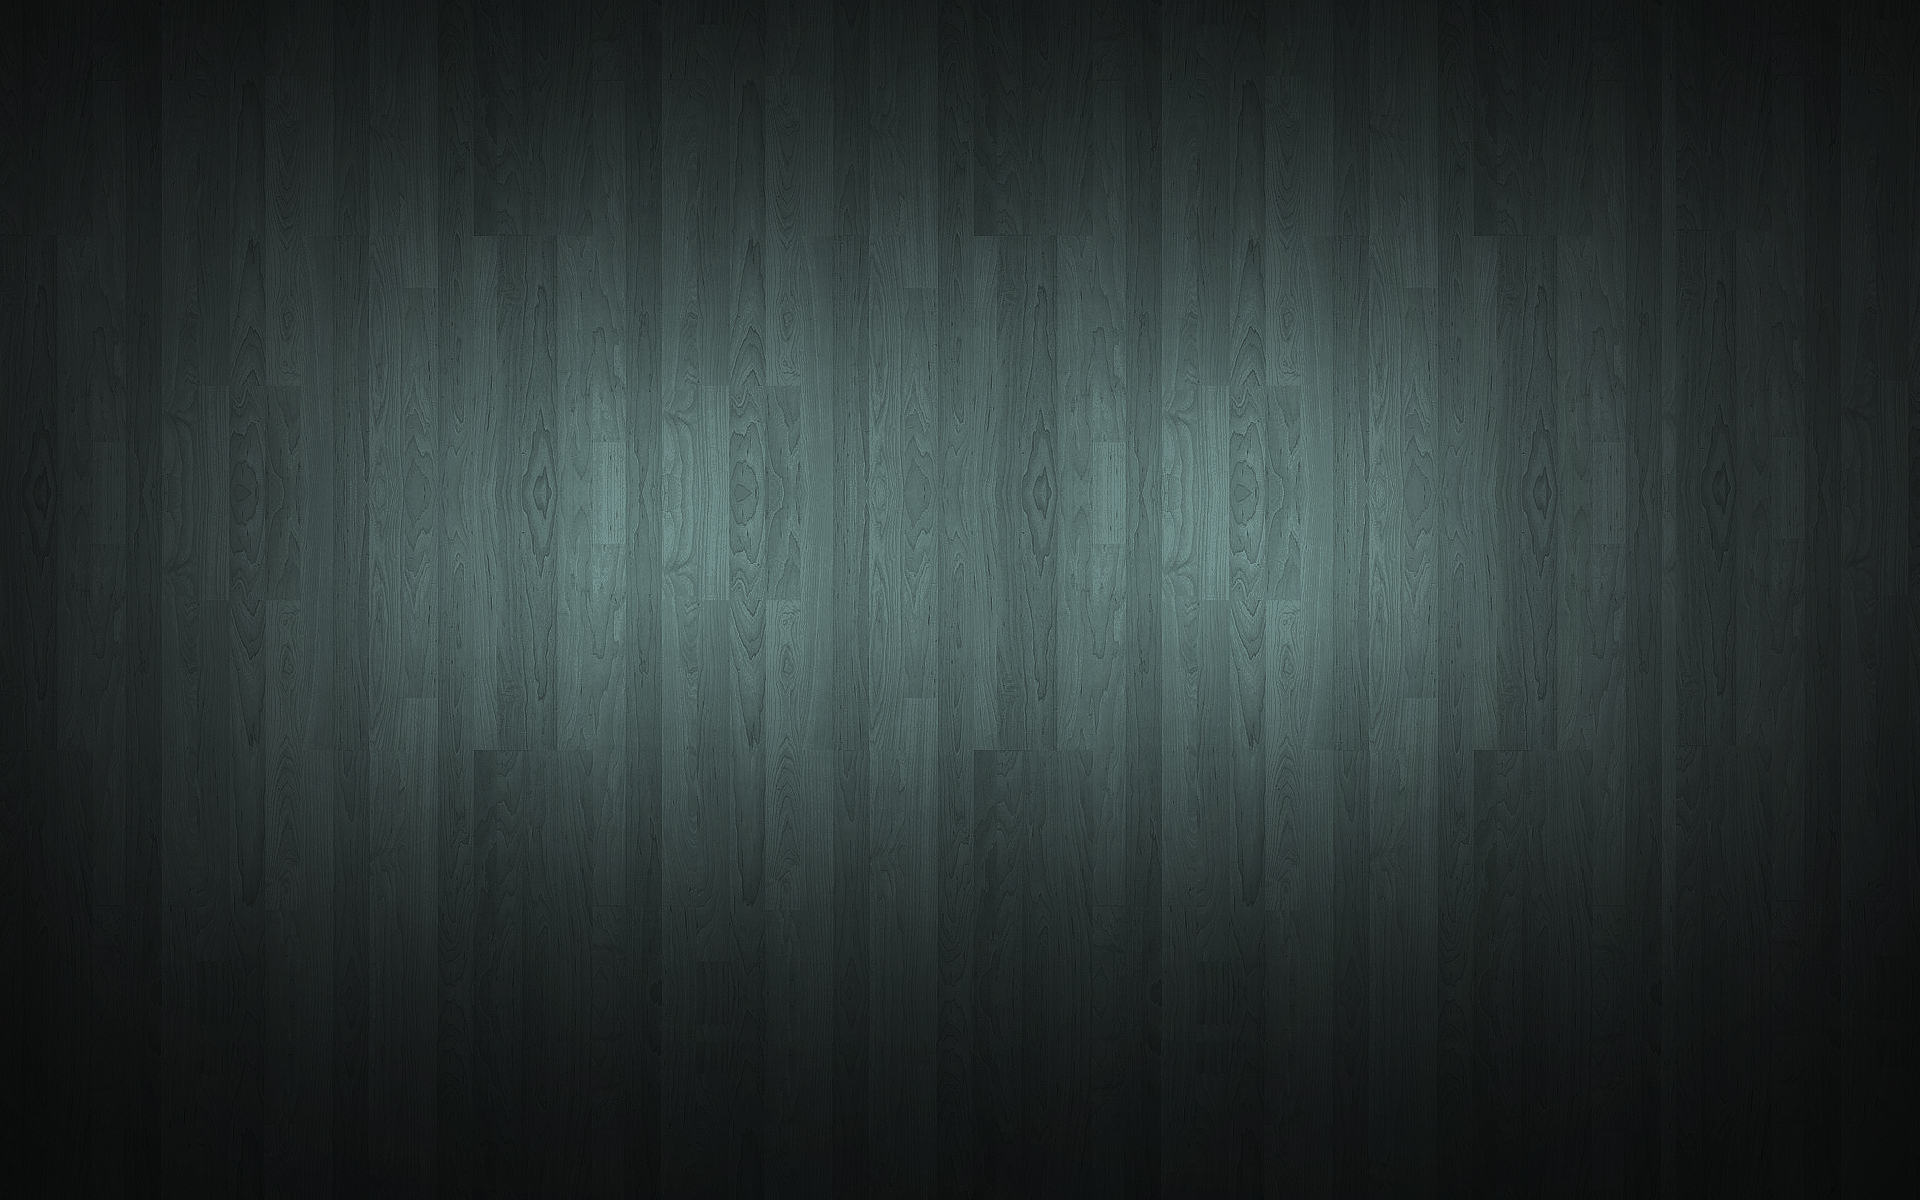 abstract-black-wood-wallpaper-xpx-cool_black-wood-wallpaper-black-abstract-pictures-cool-black-background